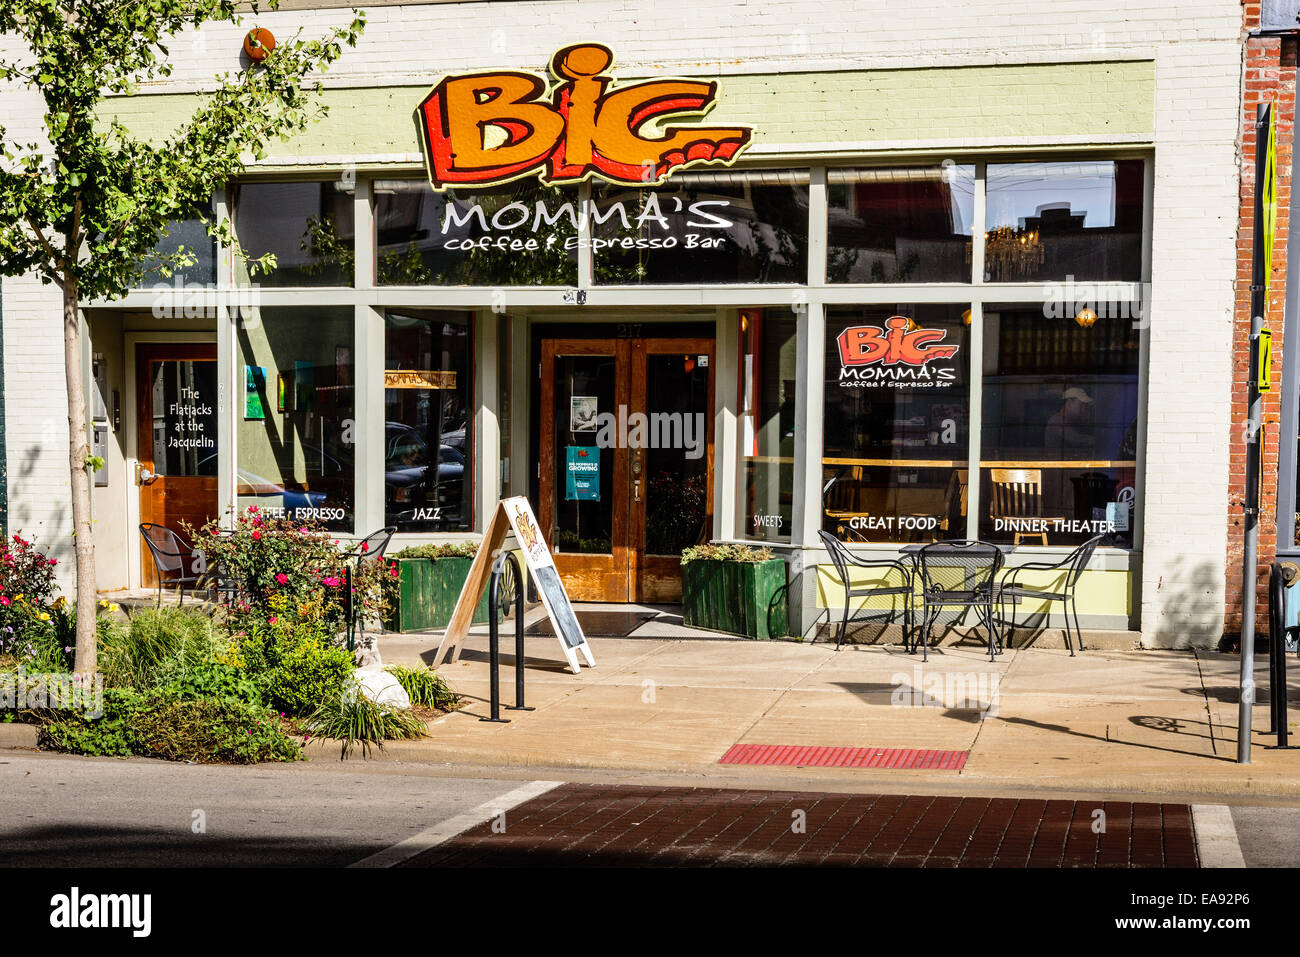 Big Momma's Café et expresso Bar, 217 East Commercial (C-Street), la Woodland Heights, Springfield, Missouri Photo Stock